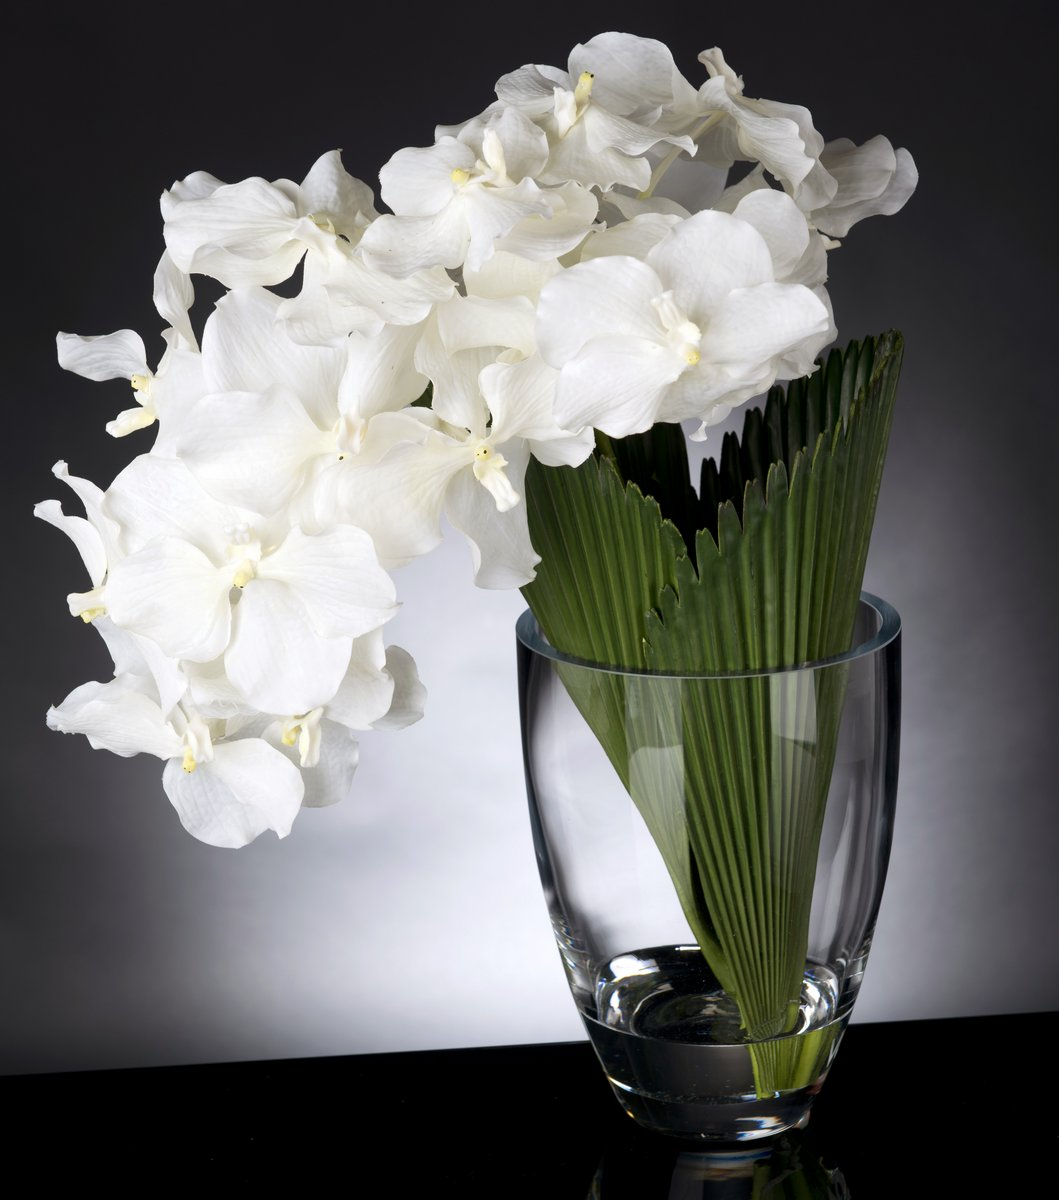 Floral arrangements by VG New Trend - Vase Orchid Palmitos - Masha Shapiro Agency.jpg